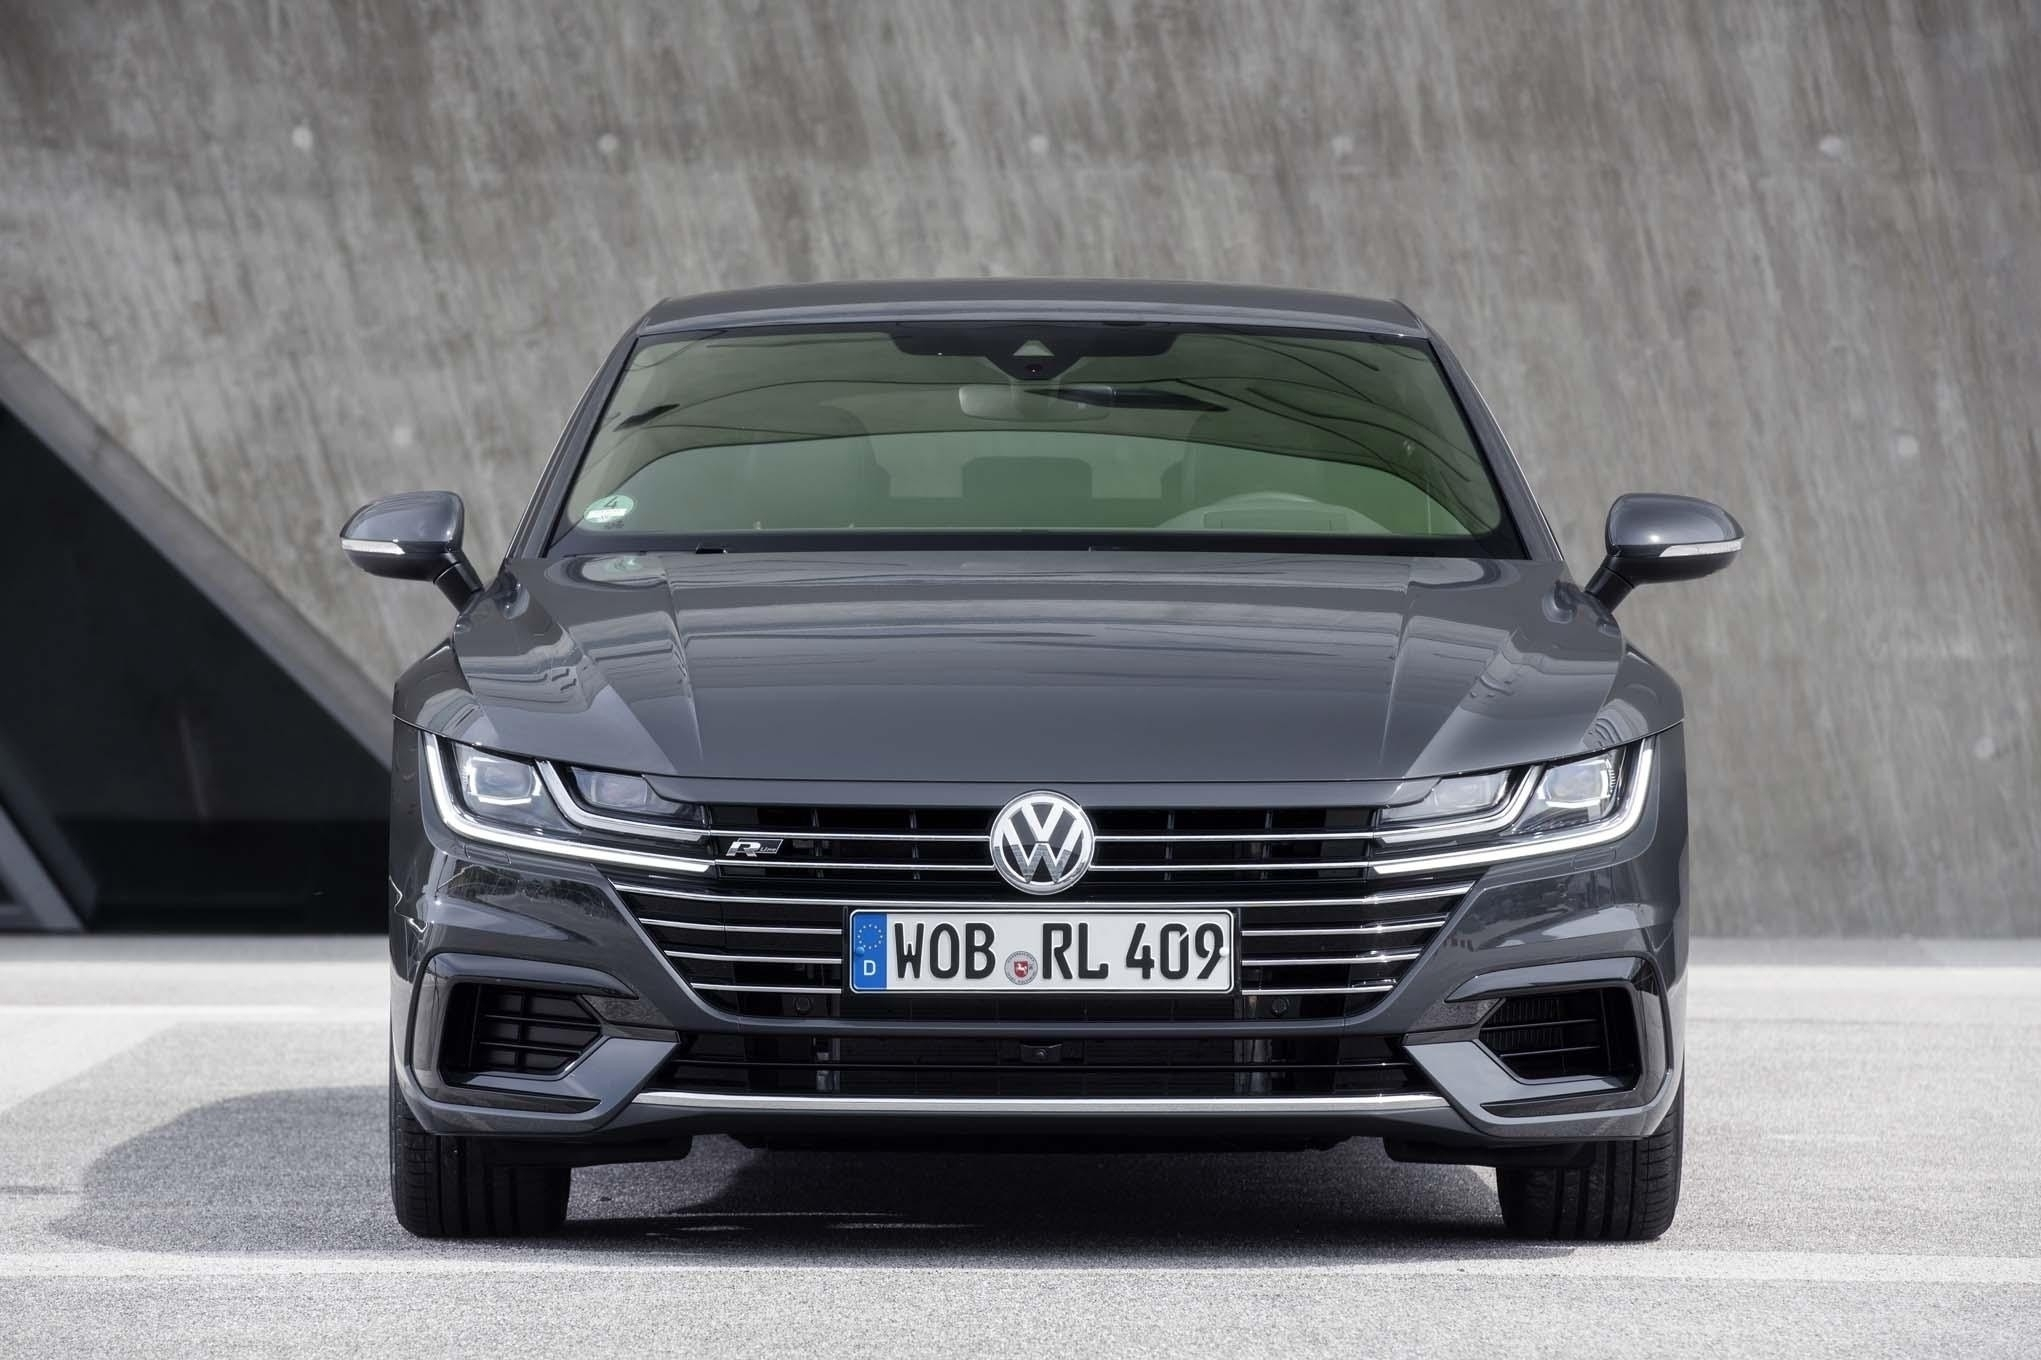 56 The Best Next Generation Vw Cc Price Design and Review